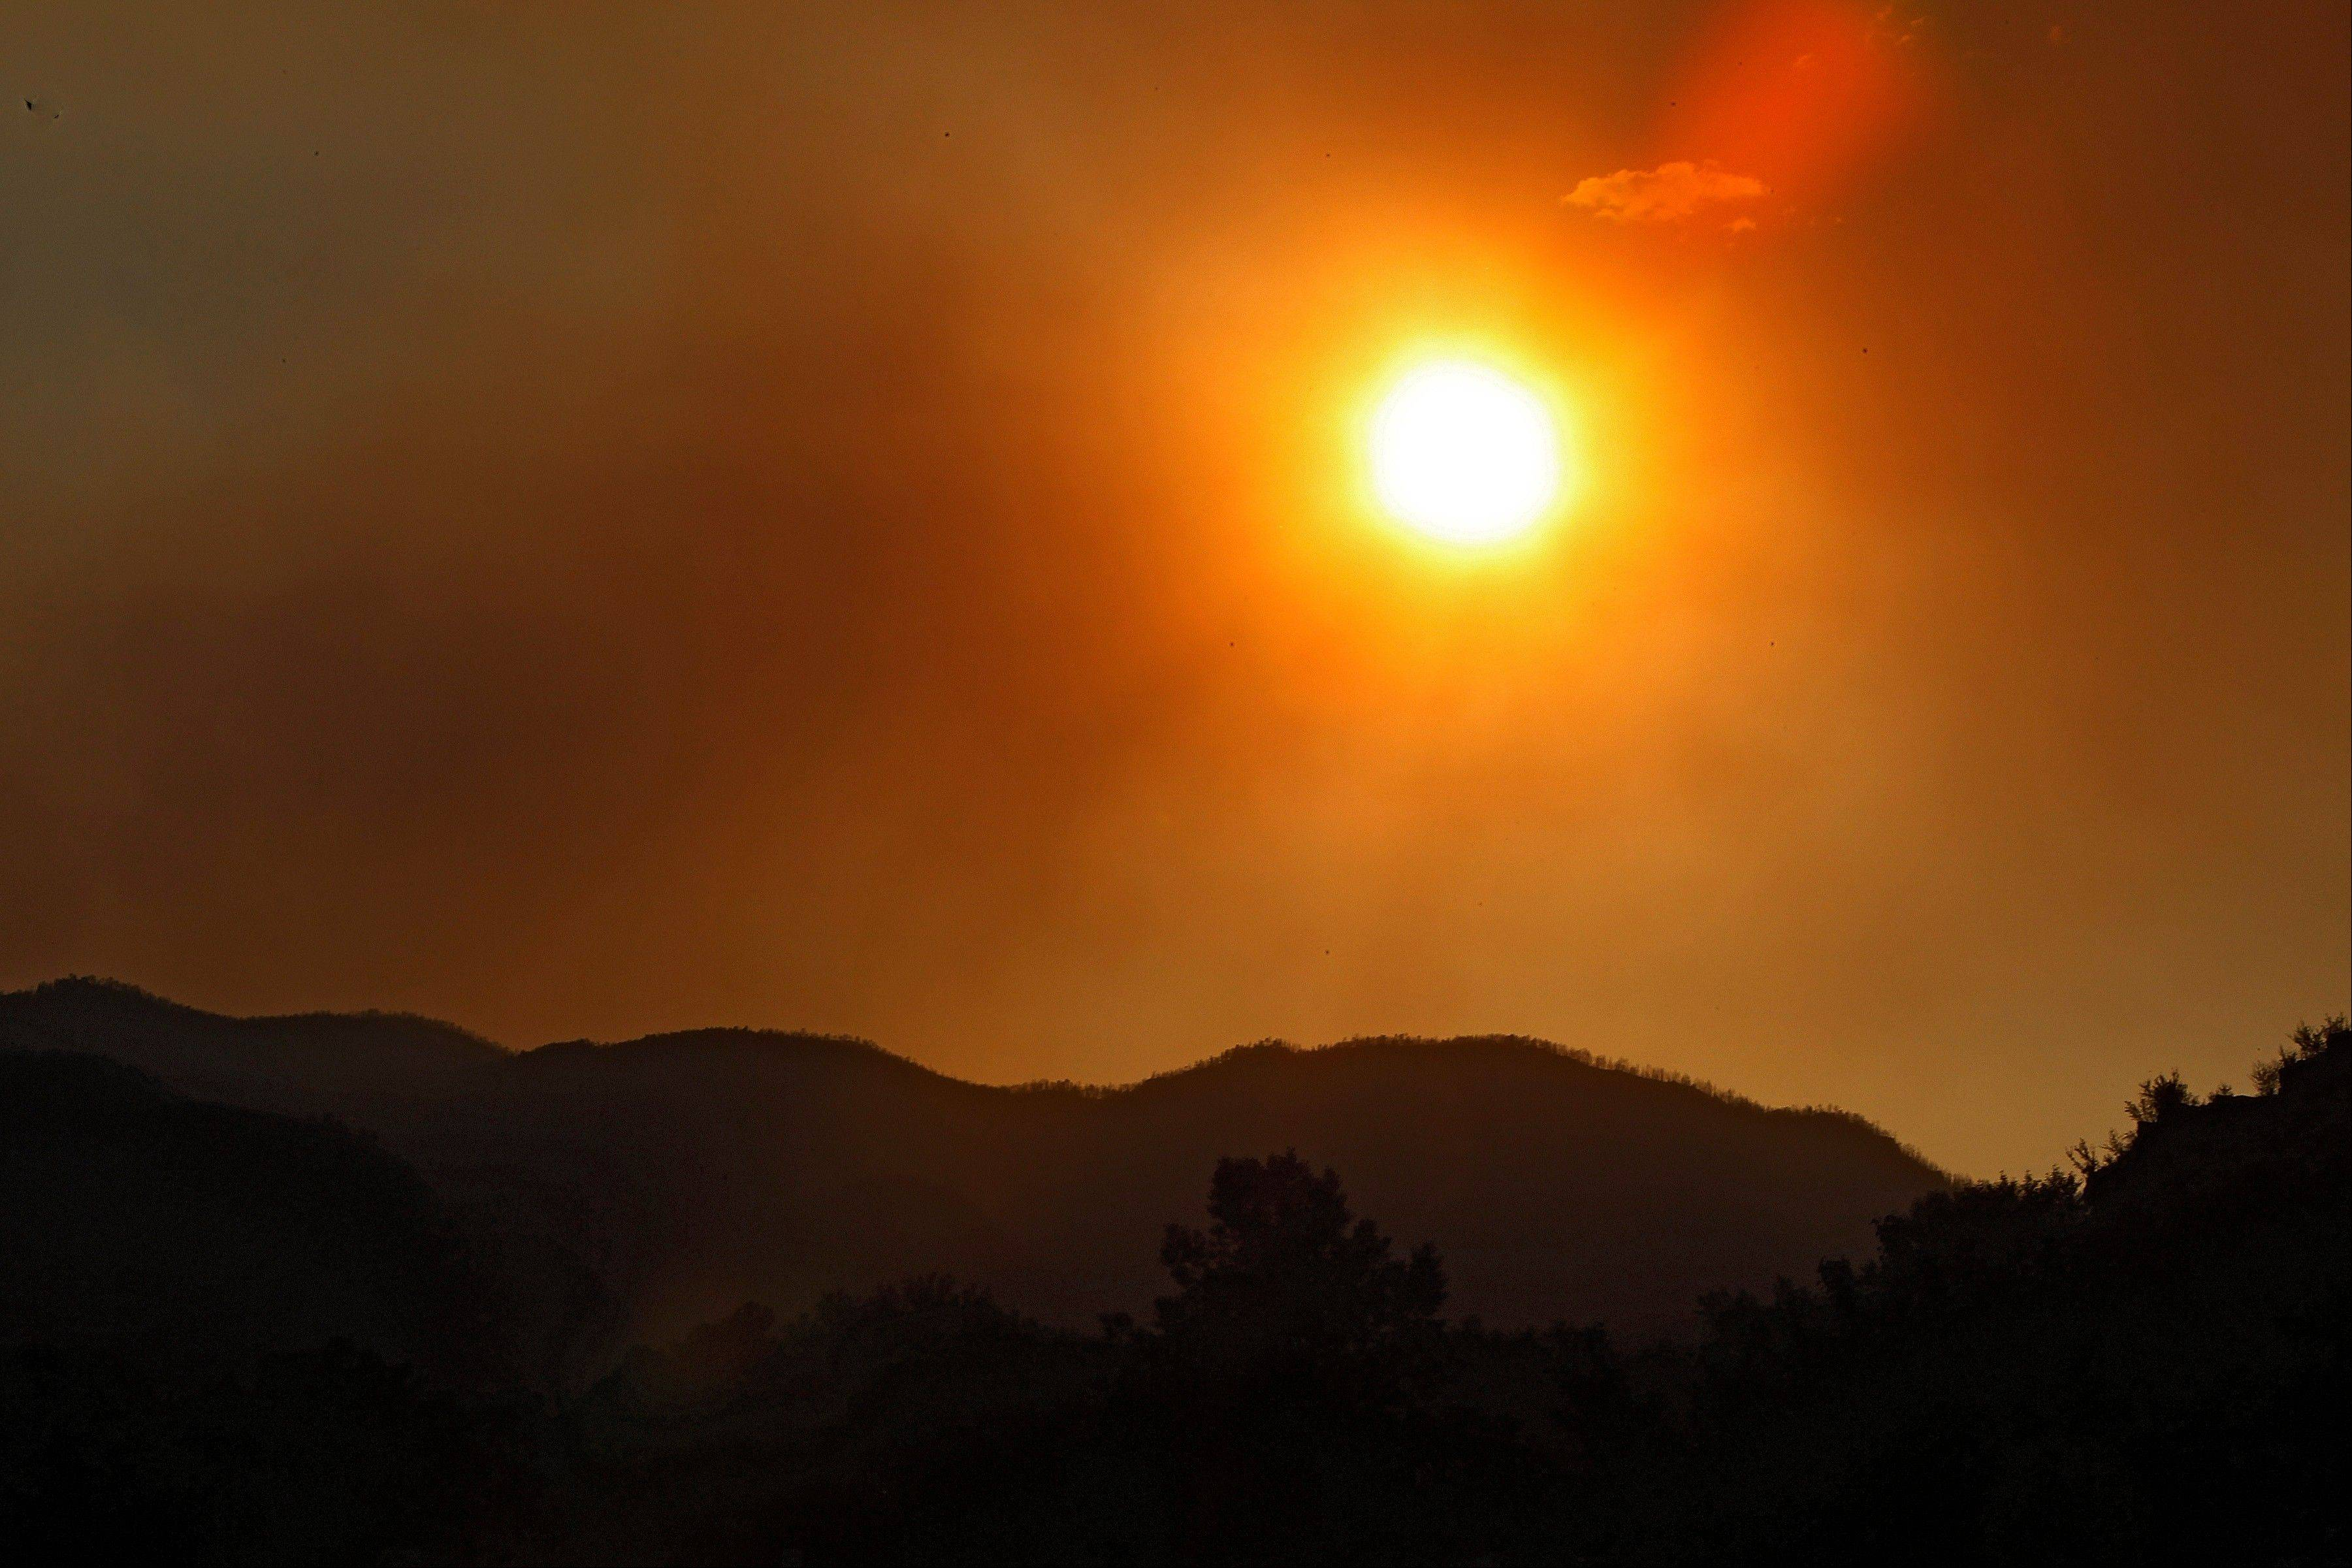 The sun sets amidst smoke from the High Park Fire near Bellvue, Colo., on Monday, June 18, 2012. The wildfire has now burned about 90 square miles and destroyed more than 180 homes.